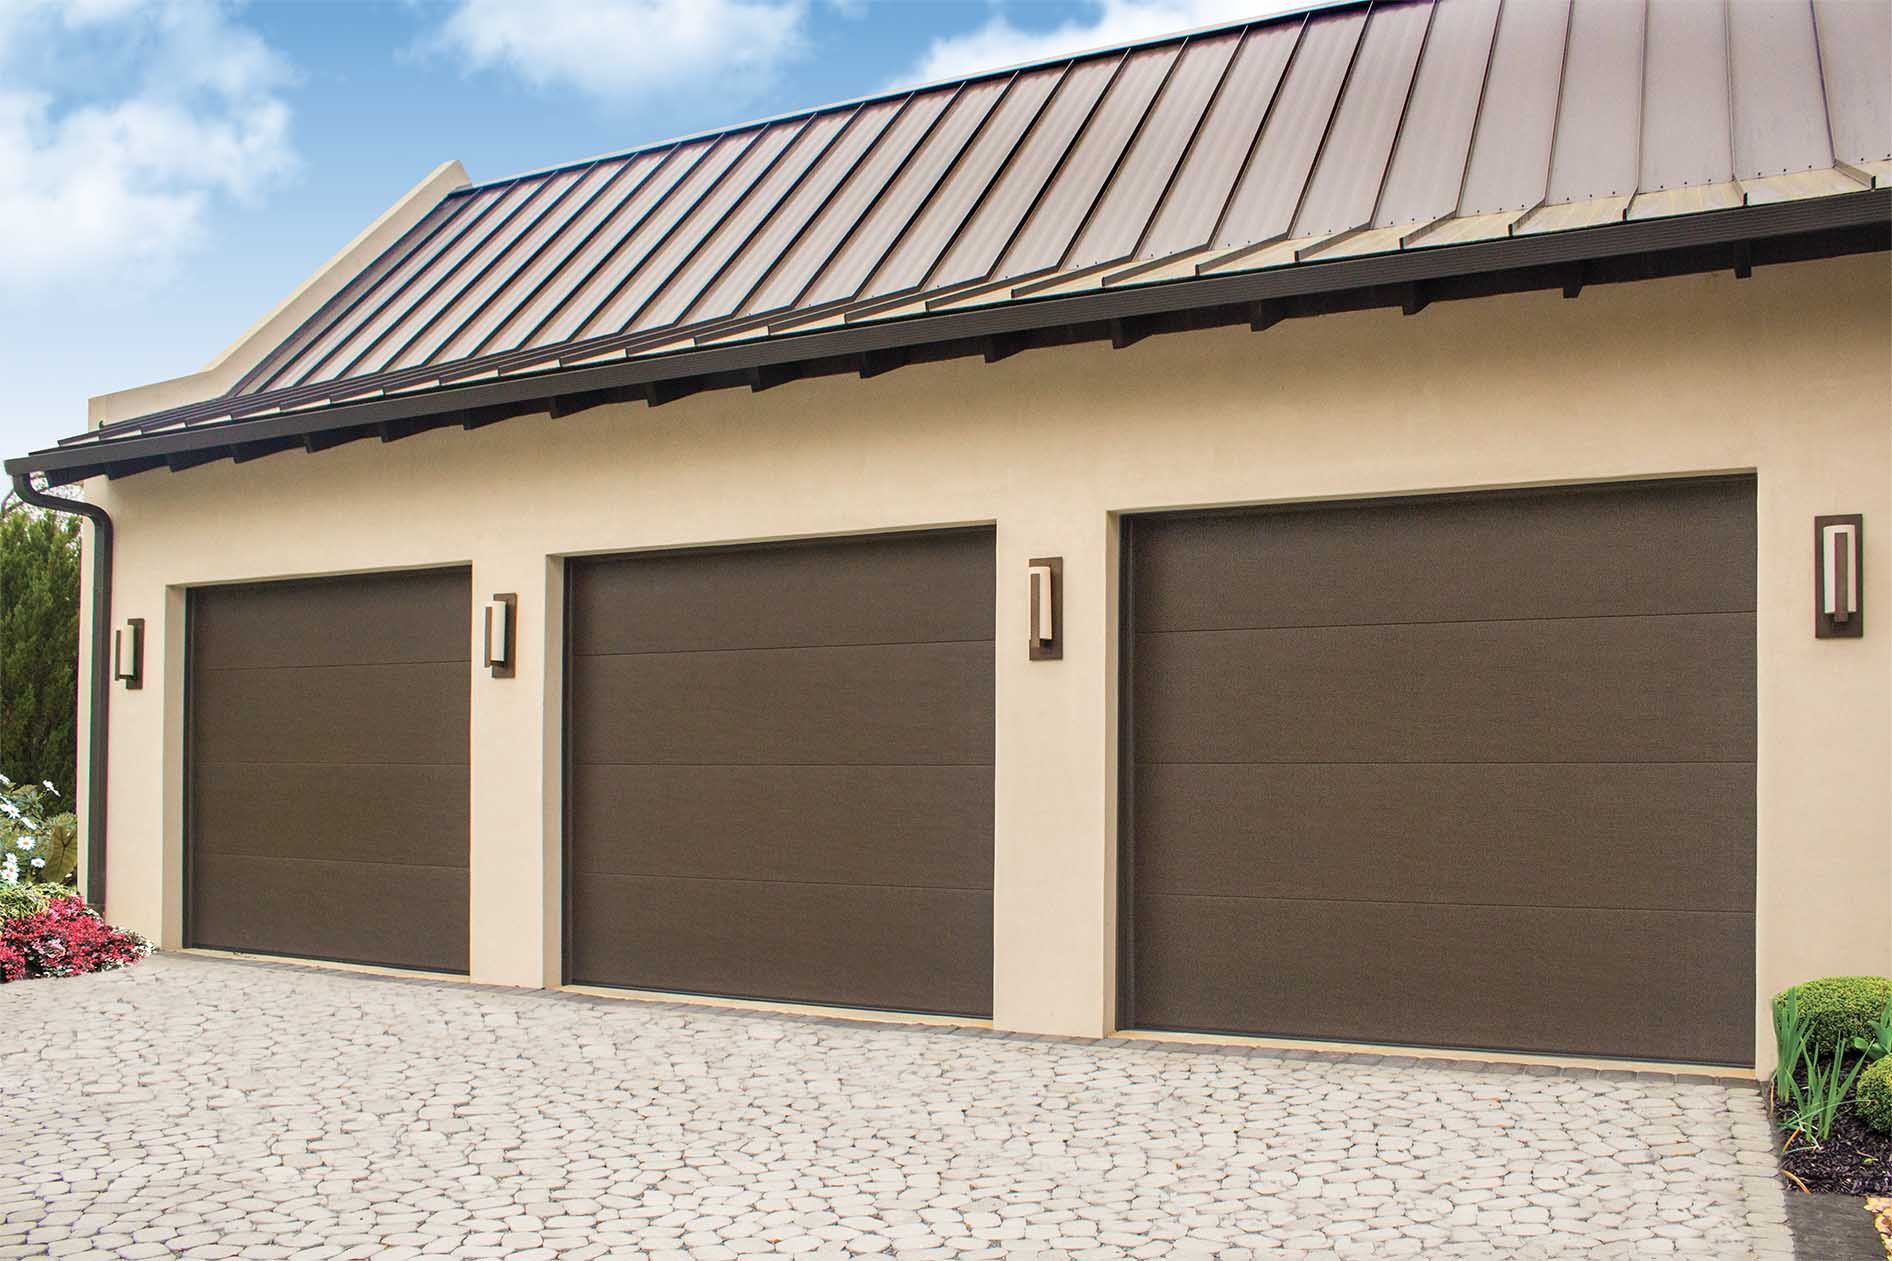 Wayne dalton 8500 colonial ranch d and d garage doors for Wayne dalton garage doors